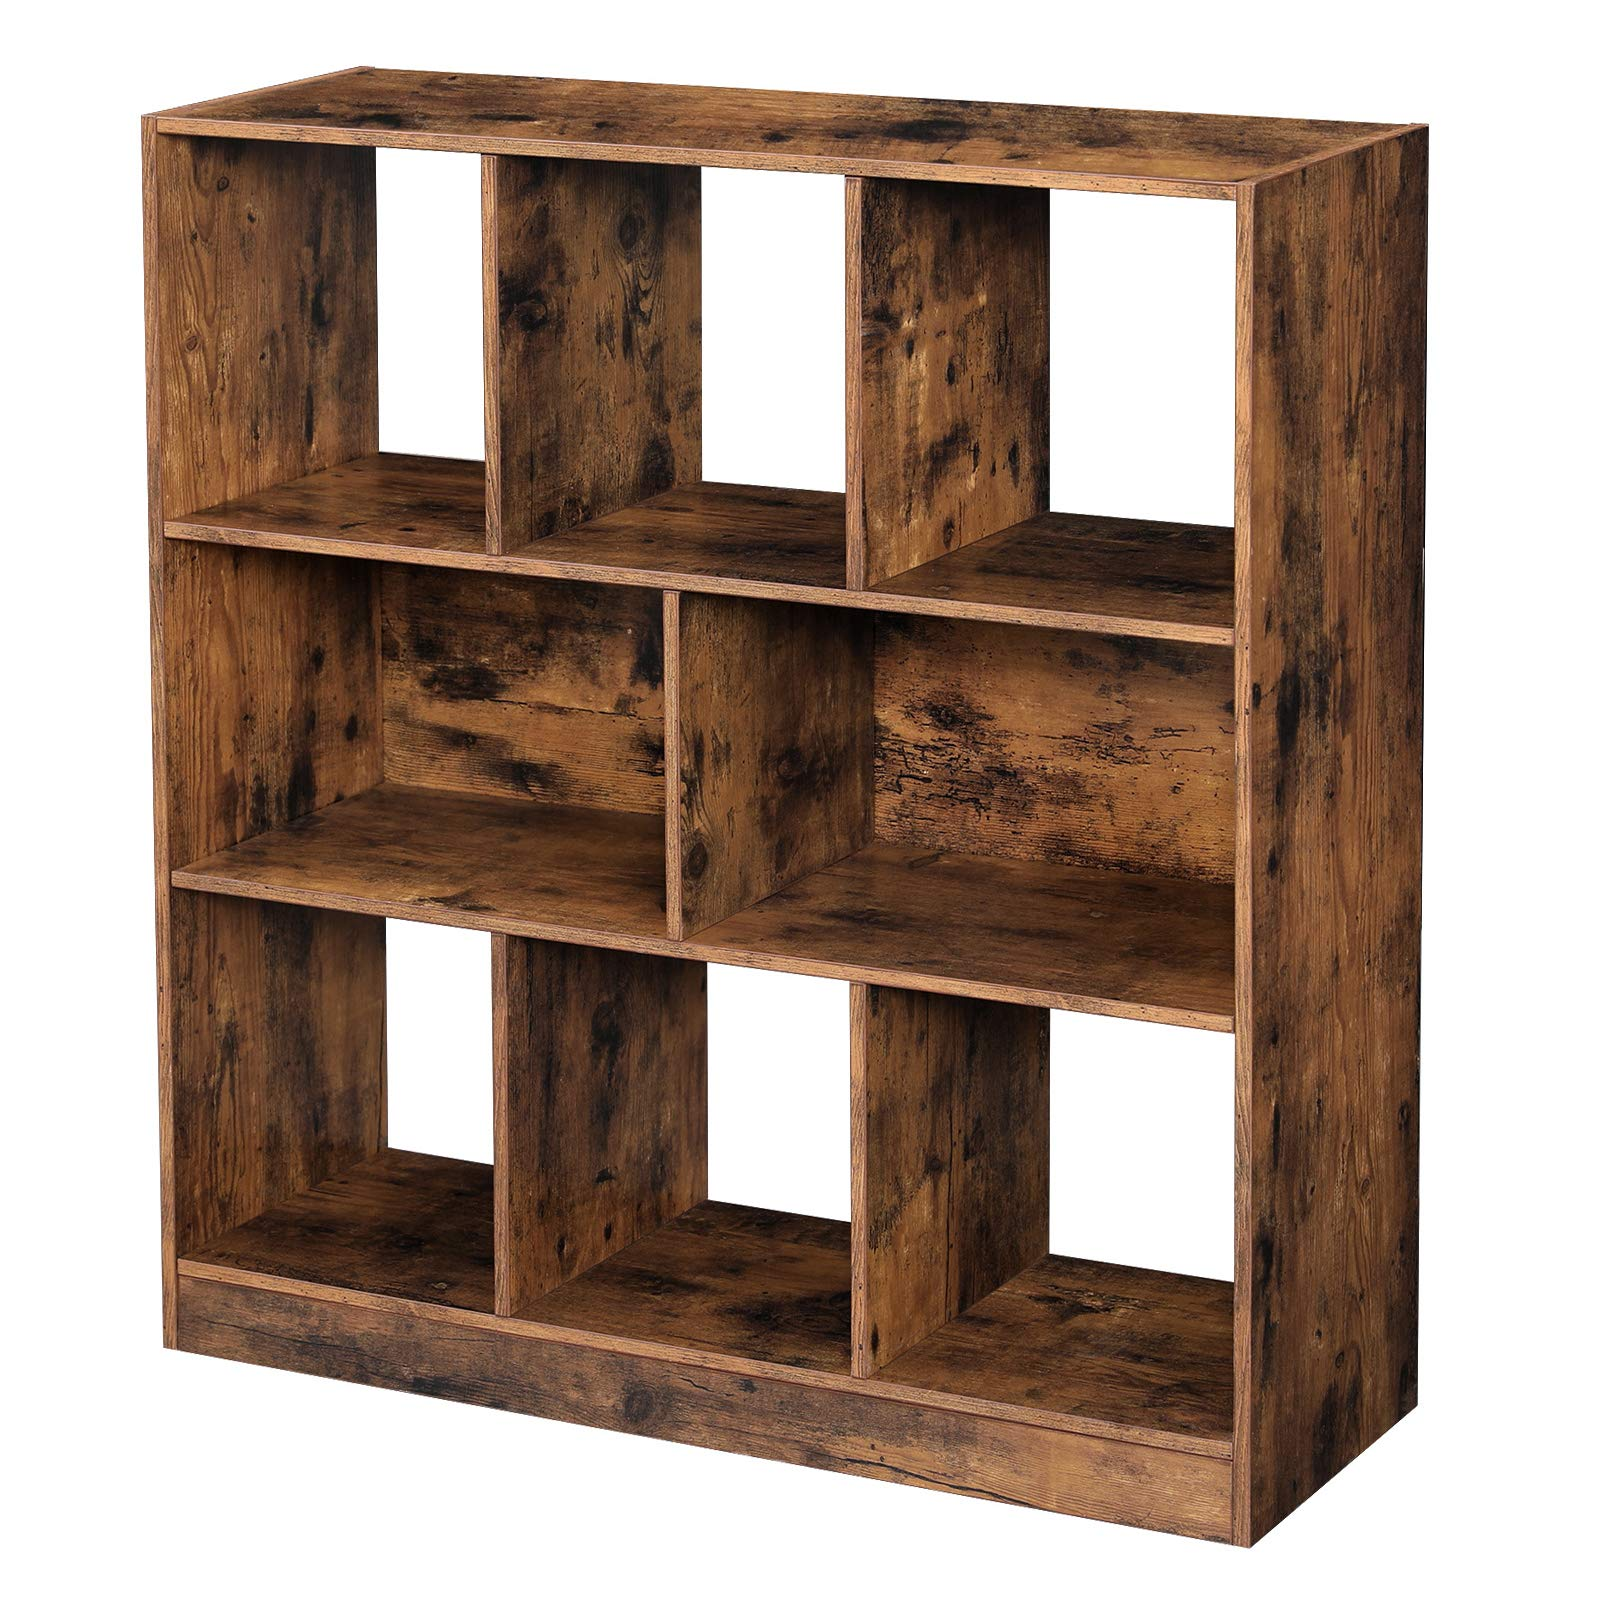 VASAGLE Wooden Bookcase with Open Cubes and Shelves, Free Standing Bookshelf Storage Unit and Display Cabinet, for Living Room, Study Room, 33.9 x 11 x 37.2 Inches, Rustic Brown ULBC52BX